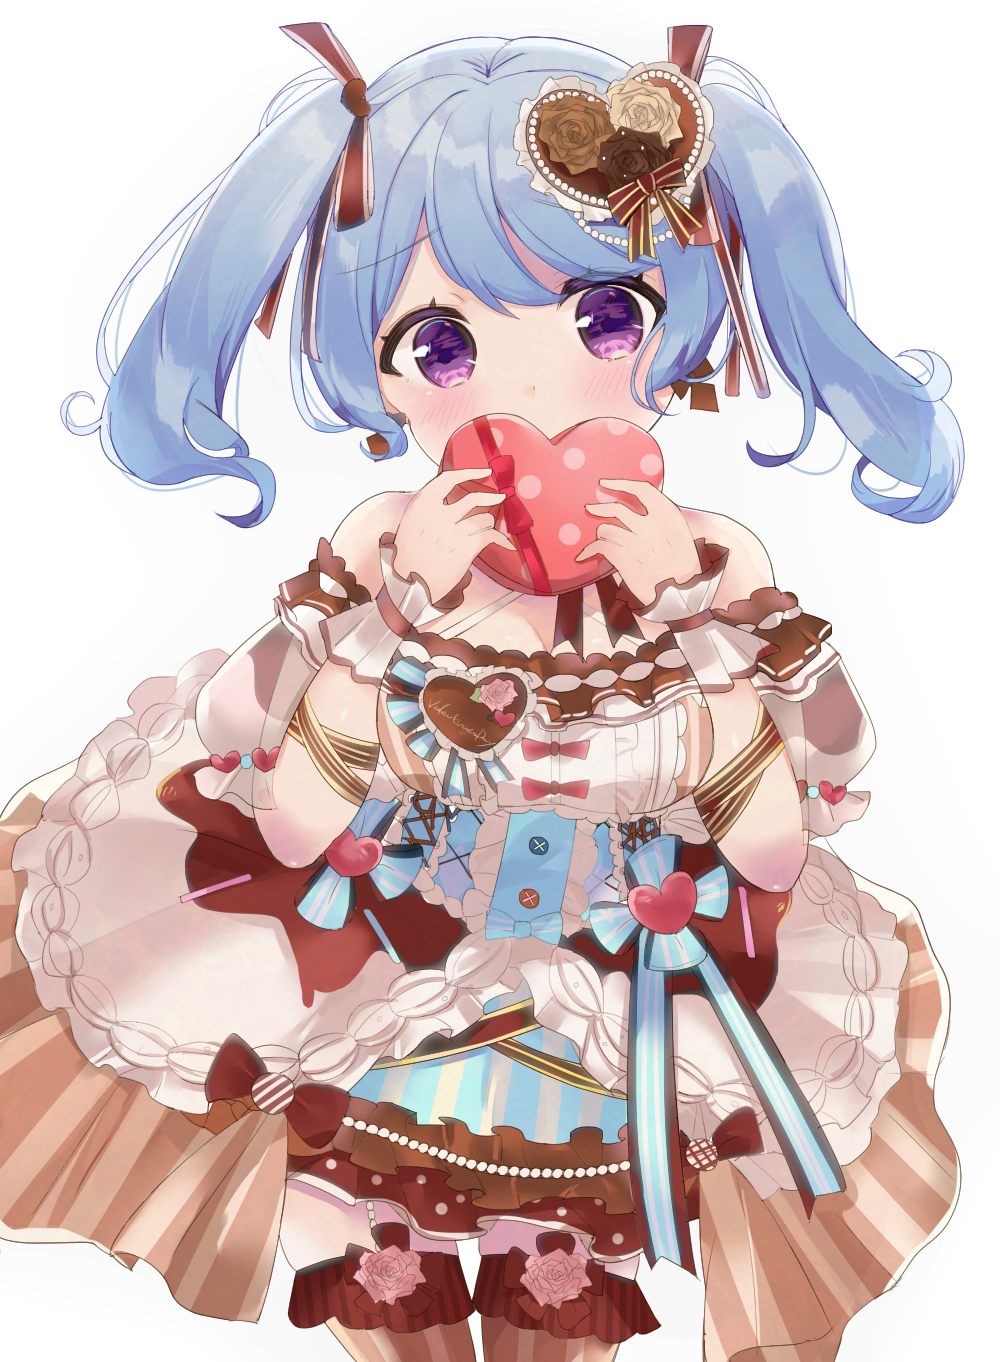 1girl alternate_hairstyle arm_ribbon bang_dream! bangs black_flower blue_hair blue_ribbon blush box brown_flower brown_ribbon center_frills covering_mouth detached_sleeves dress earrings flower frilled_dress frills gift hair_flower hair_ornament hair_ribbon heart heart-shaped_box heart_hair_ornament highres holding holding_gift jewelry lolita_fashion long_hair looking_at_viewer matsubara_kanon overskirt ribbon simple_background solo sweet_lolita thigh-highs tsubaki_kino twintails valentine violet_eyes white_background white_flower wrist_cuffs